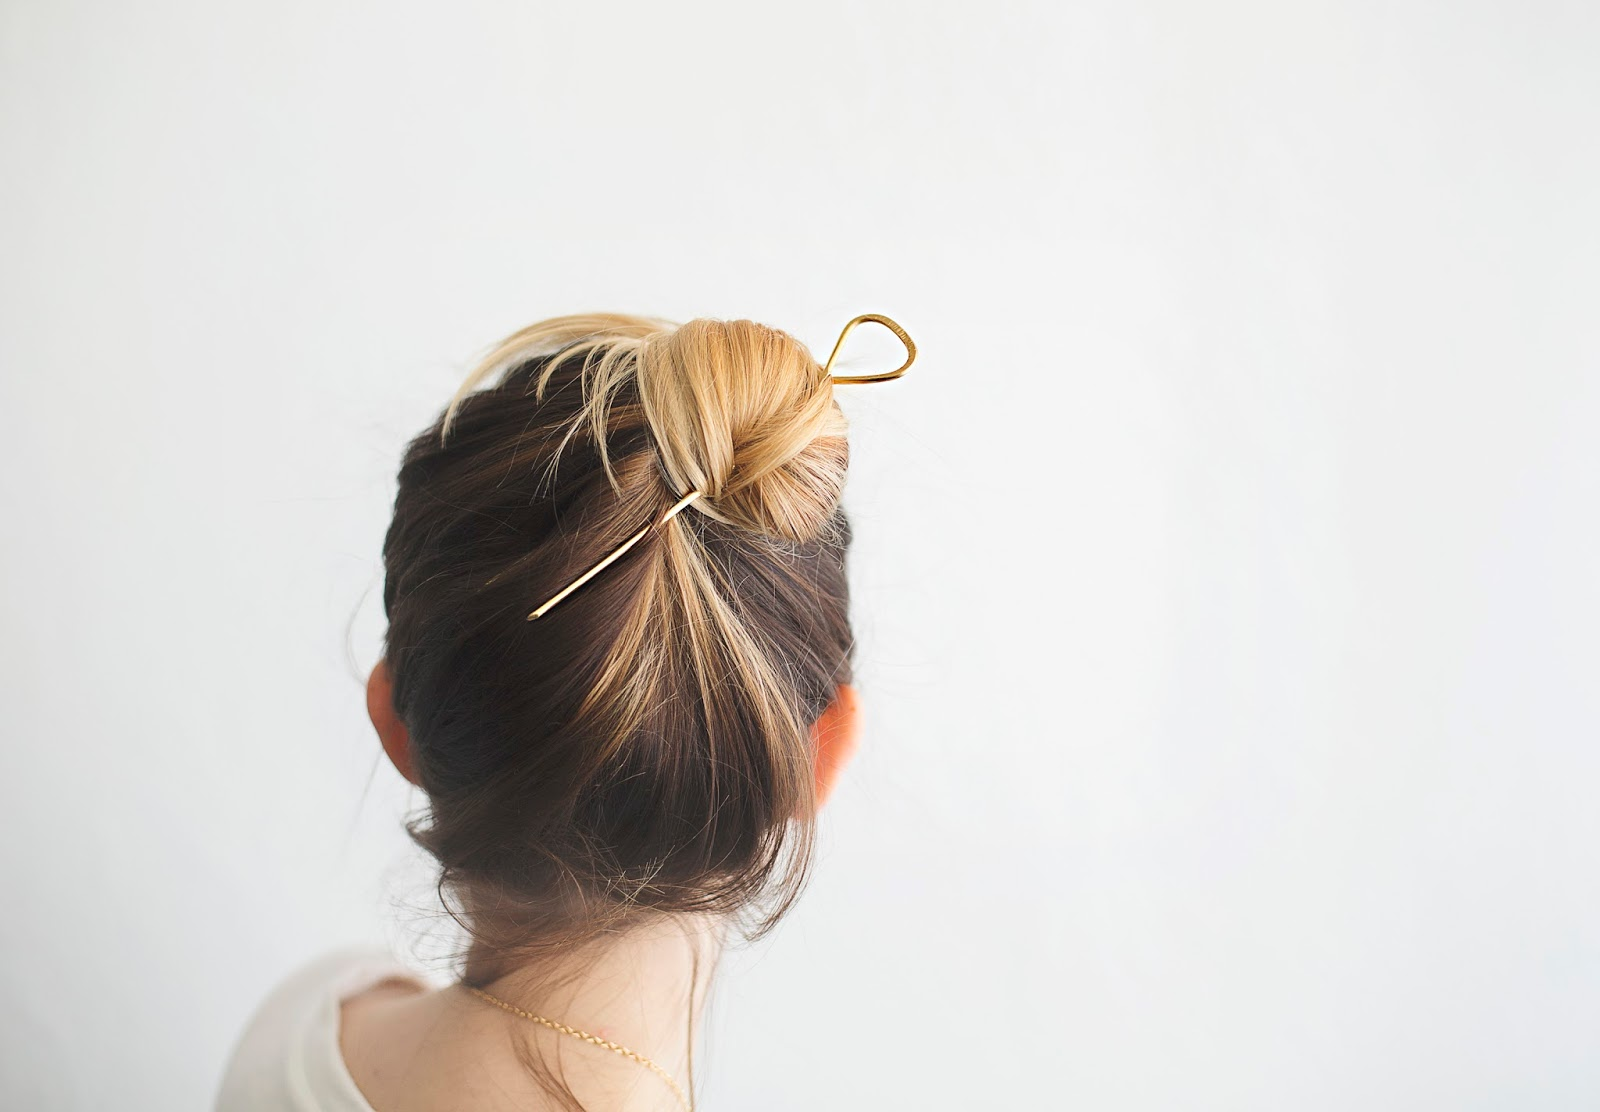 The Hair Stick   How To   CIRE ALEXANDRIA